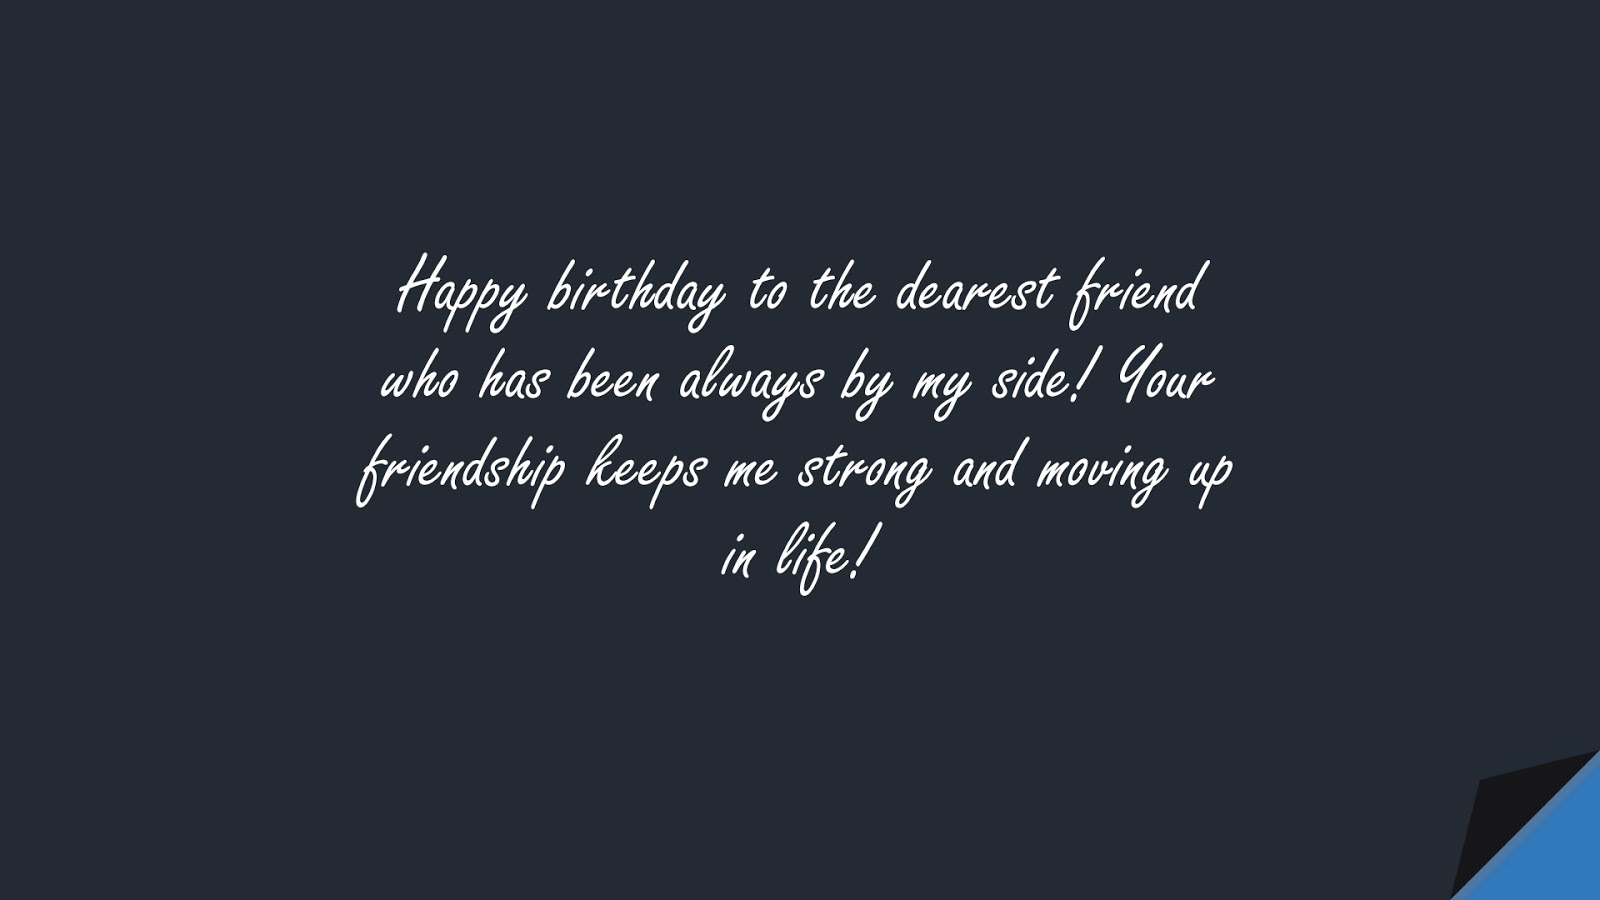 Happy birthday to the dearest friend who has been always by my side! Your friendship keeps me strong and moving up in life!FALSE